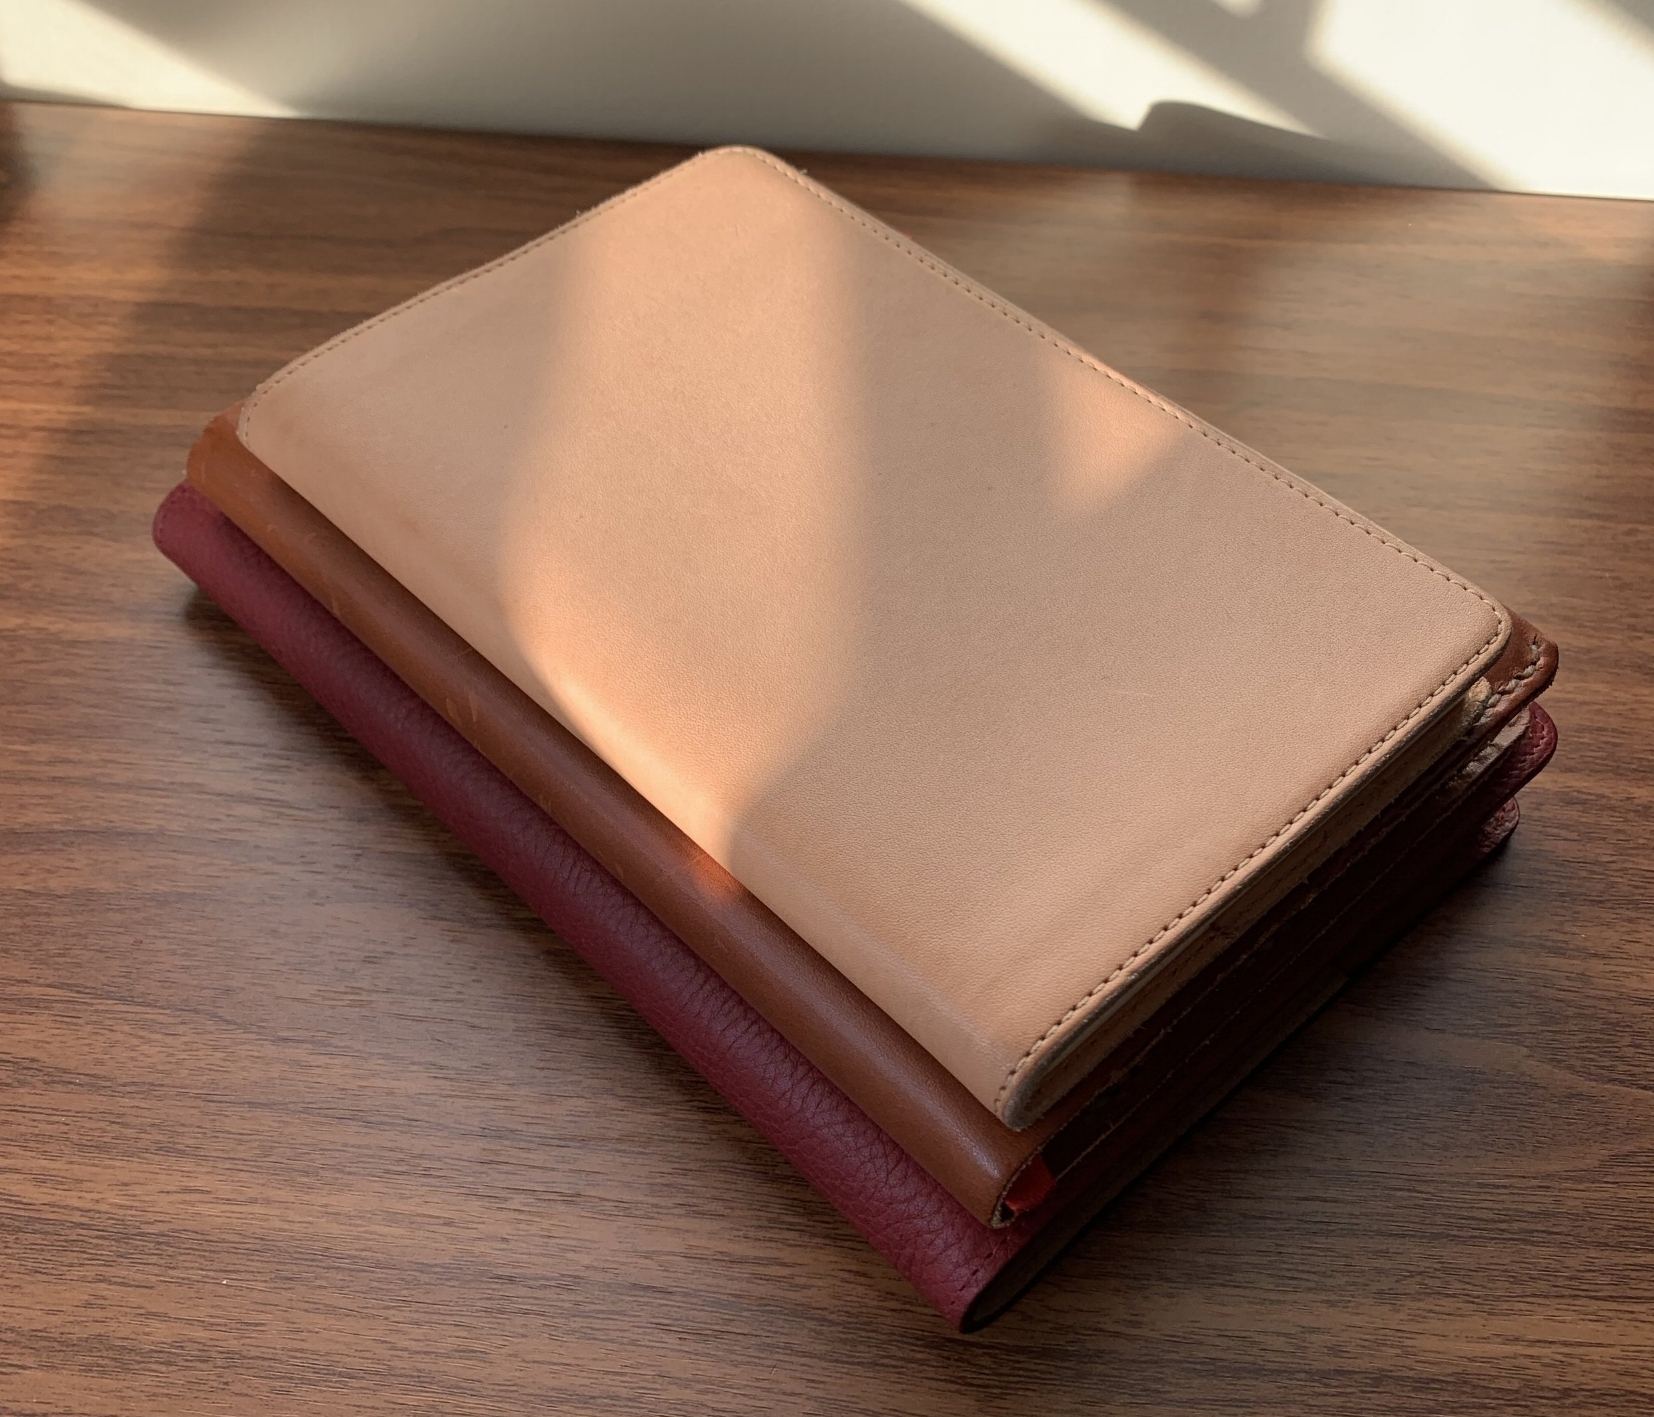 A comparison shot of three leather notebook covers that find their way into my daily rotation: The British Belt Company A5 (bottom), a  custom One Star Leather Baron Fig Confidant Cover  (middle), and the  Gfeller English Kip leather cover for my Nanami Paper Cafe Note B6  (top).